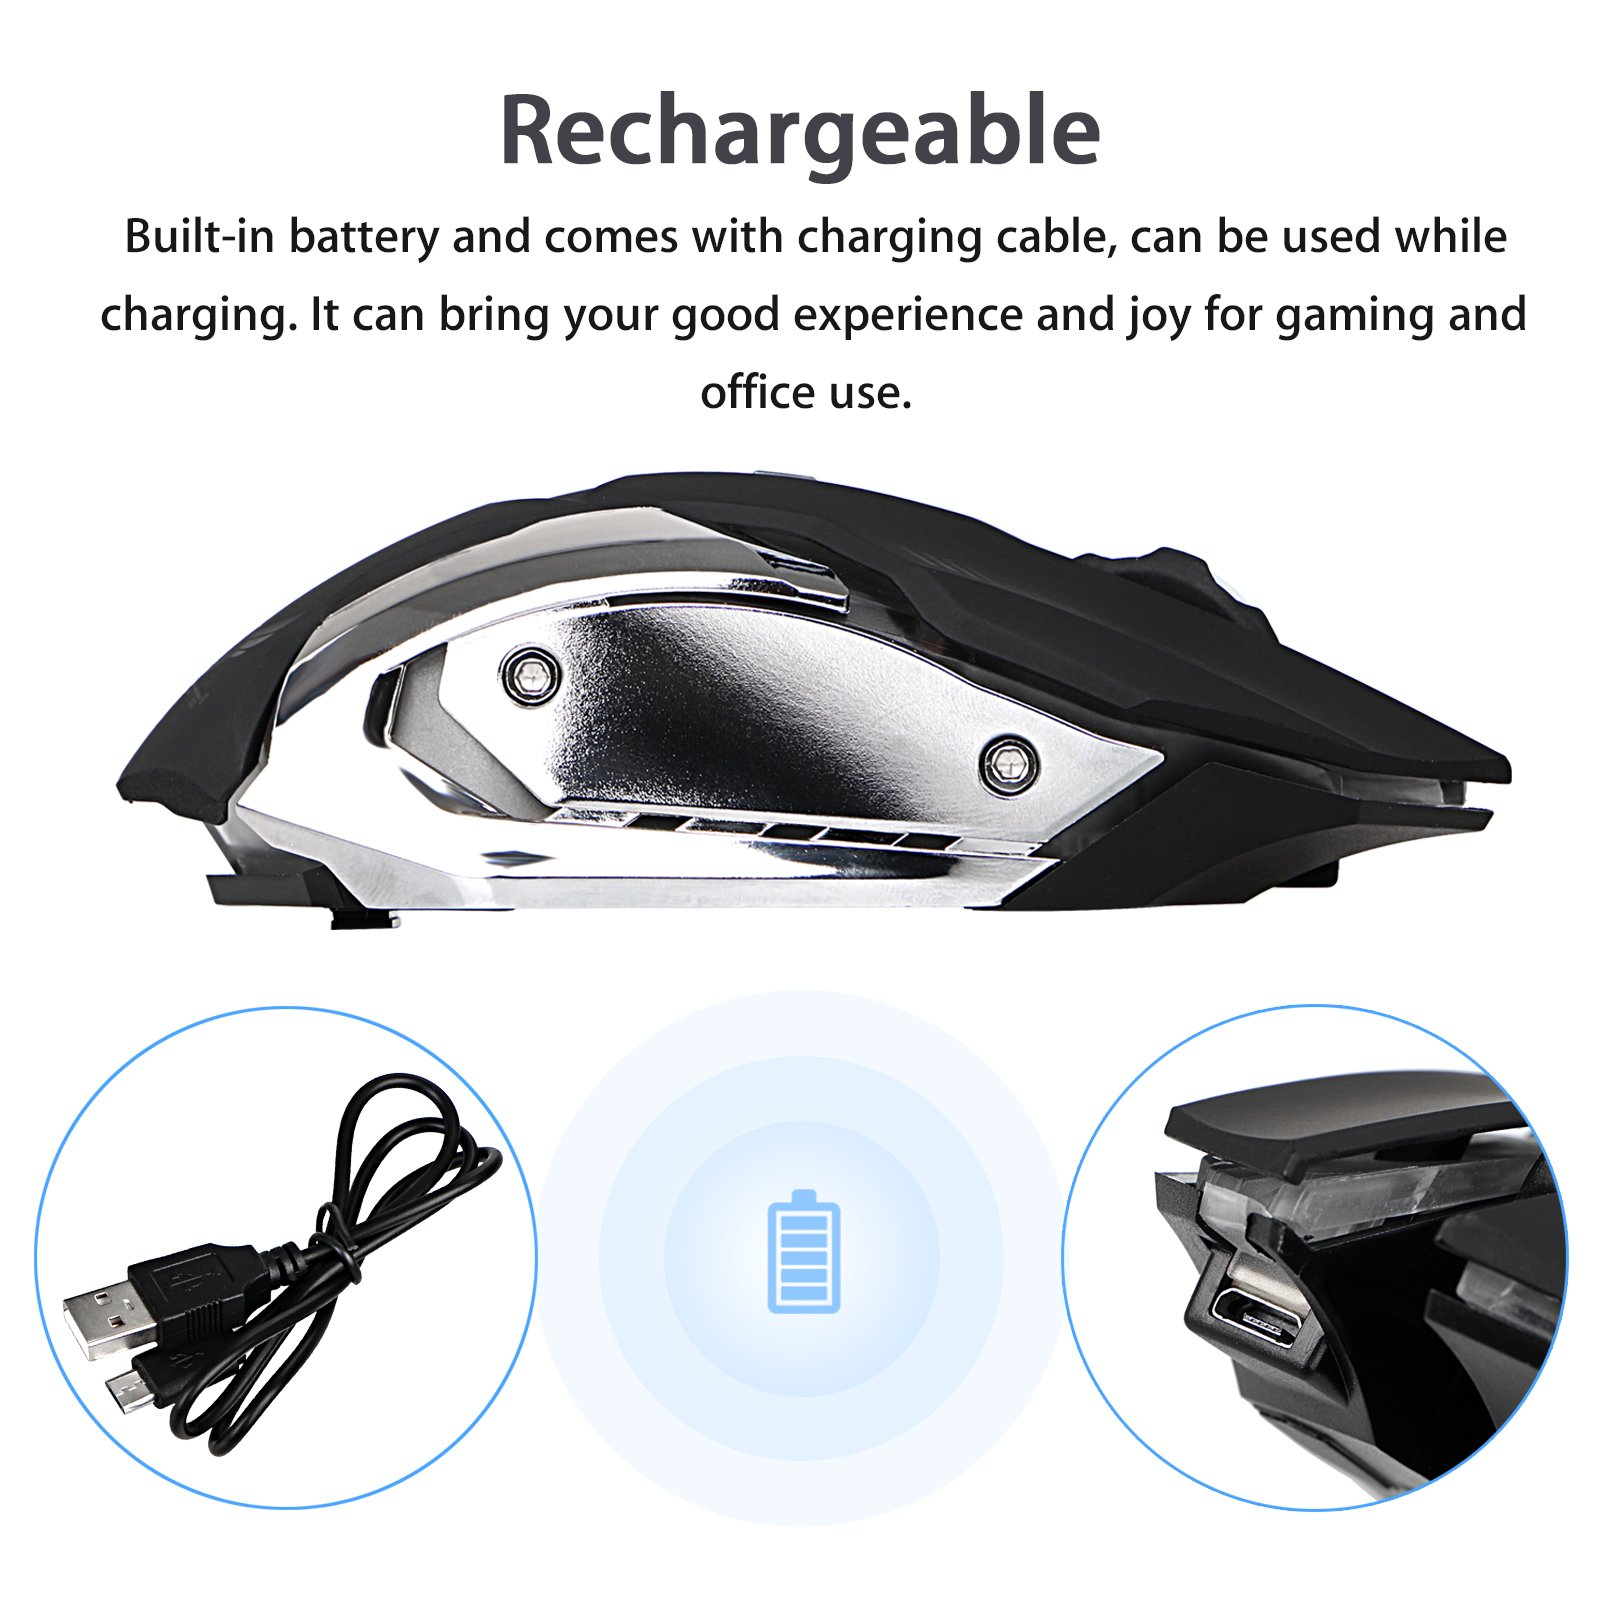 Wireless Optical Gaming Mouse with USB Receiver LinkStyle Color Changing Wireless Laptop Mouse, Rechargeable Game Mice with 4 Adjustable CPI Levels for PC, Laptop, Computer, Macbook & Gaming Players by LinkStyle (Image #4)